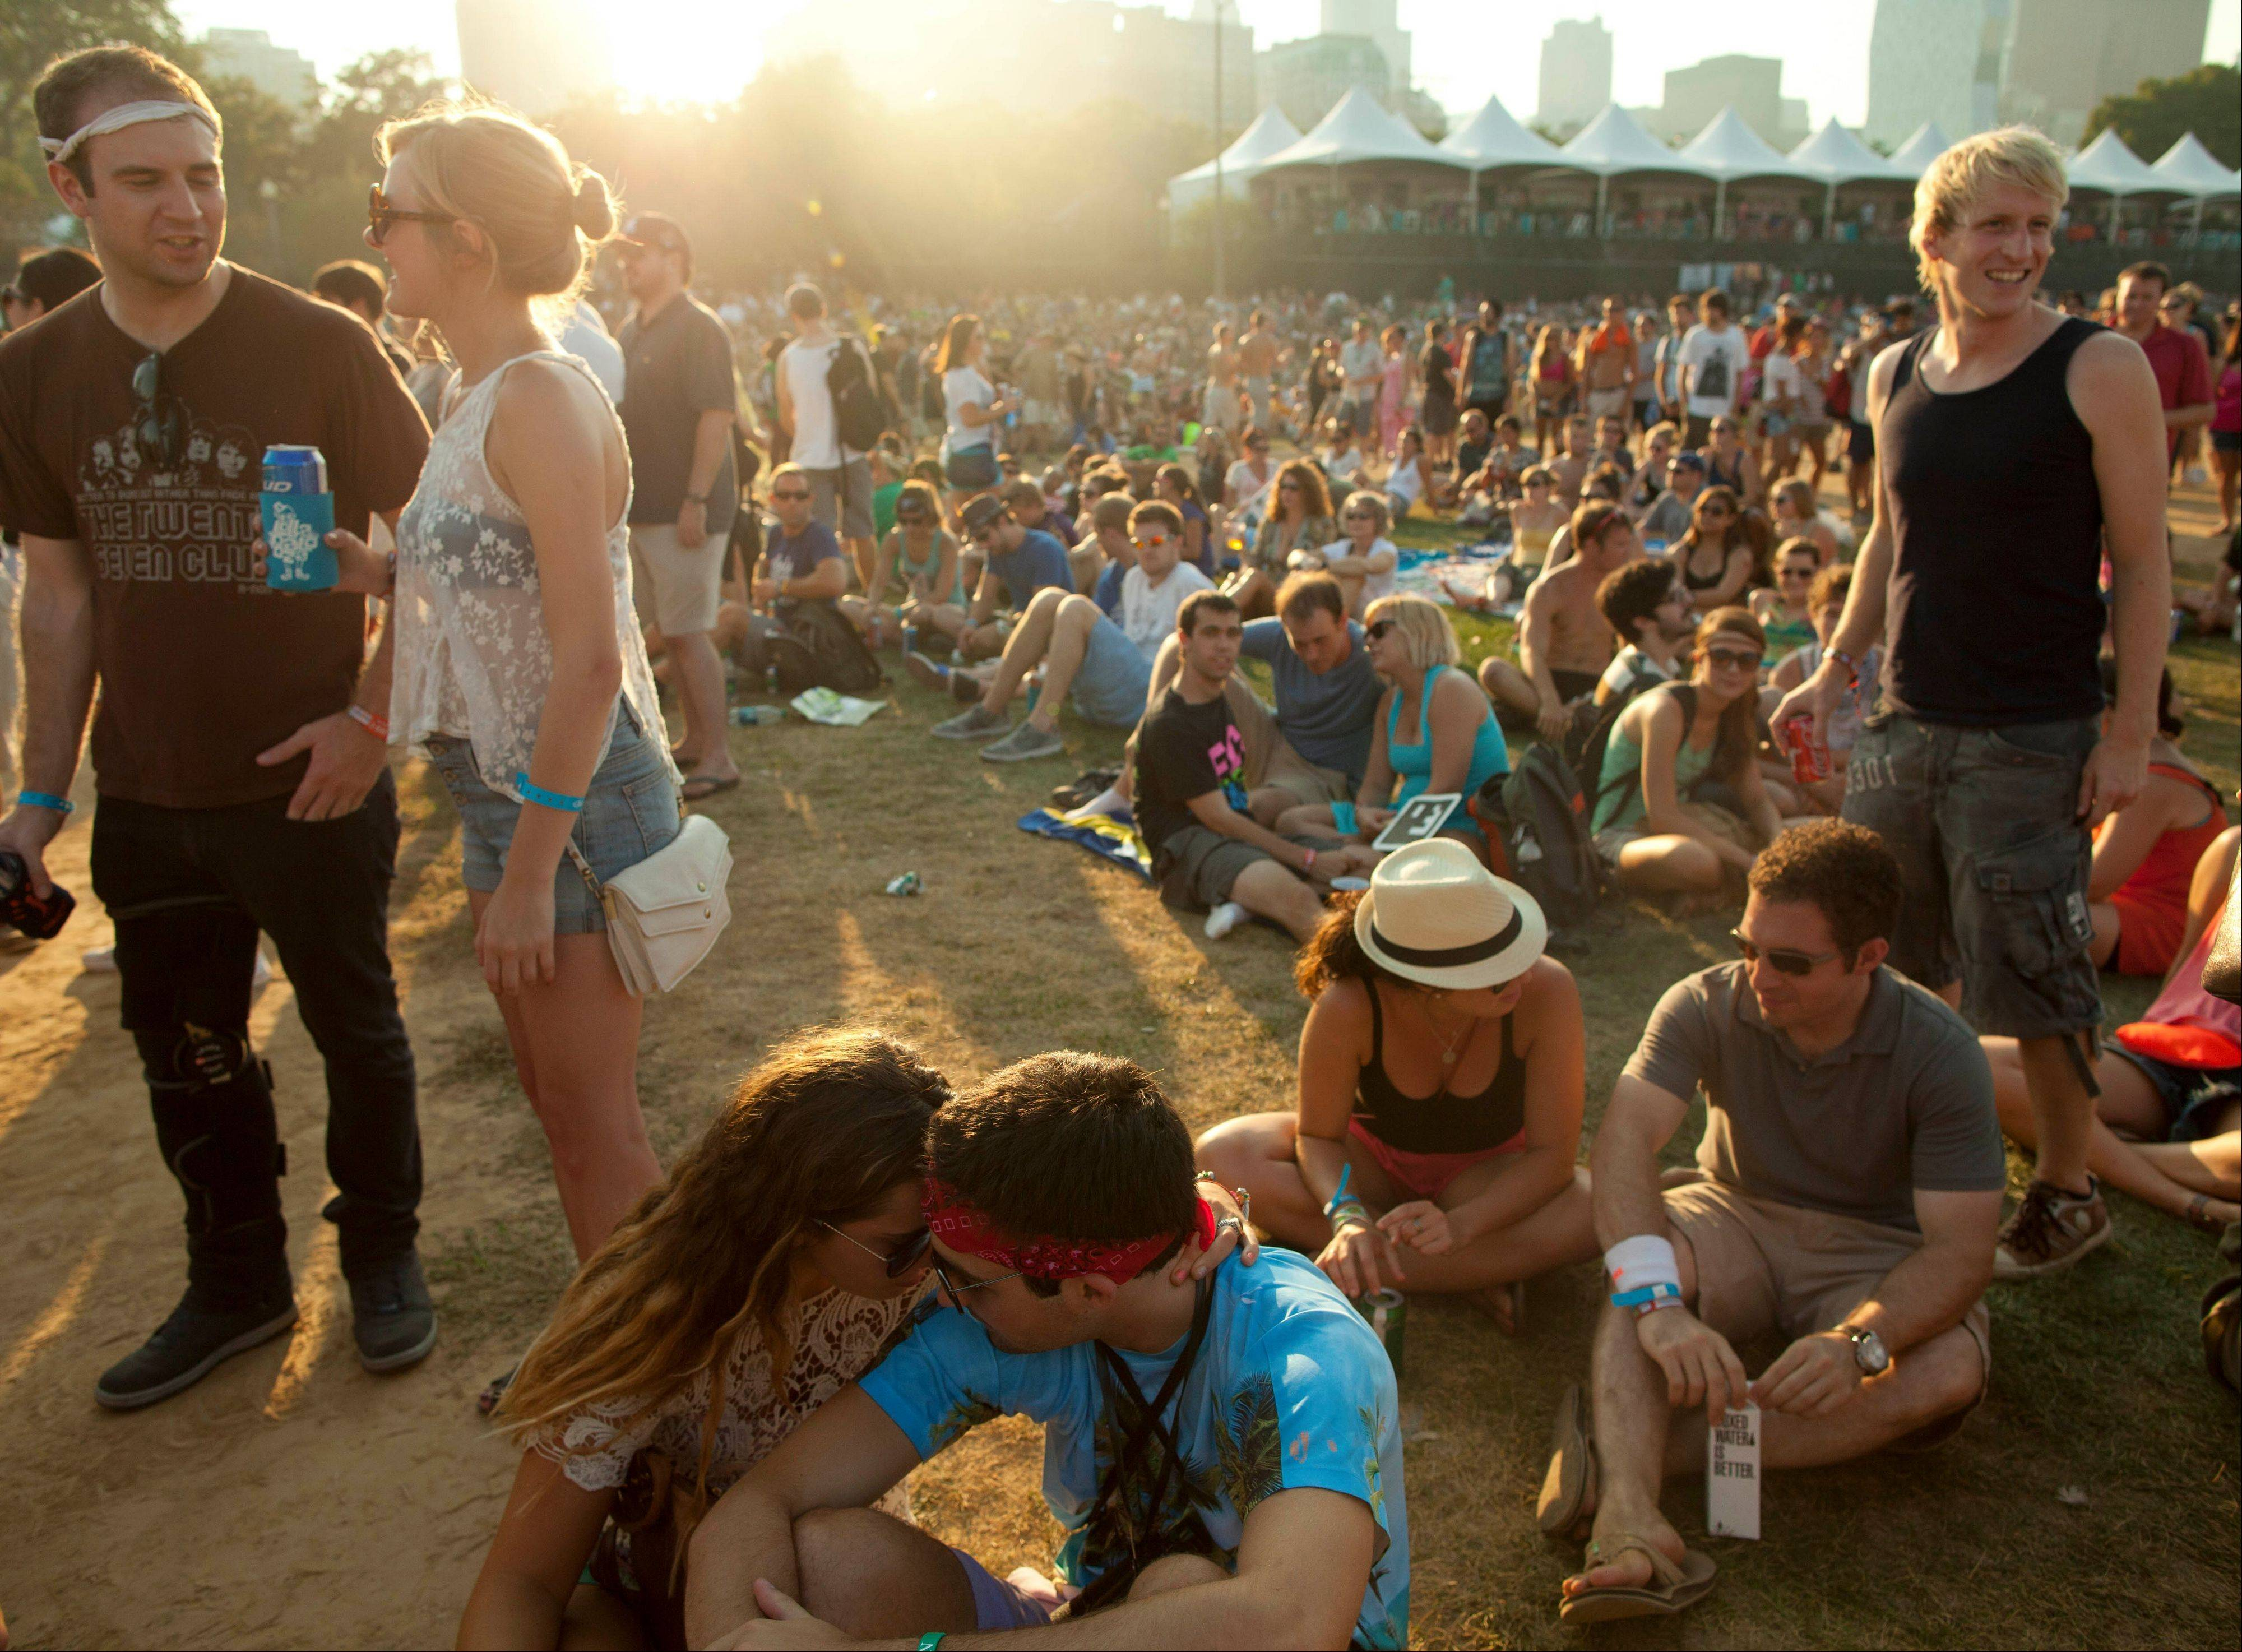 A couple shares a private moment at Lollapalooza in Chicago's Grant Park on Friday, Aug. 3, 2012.